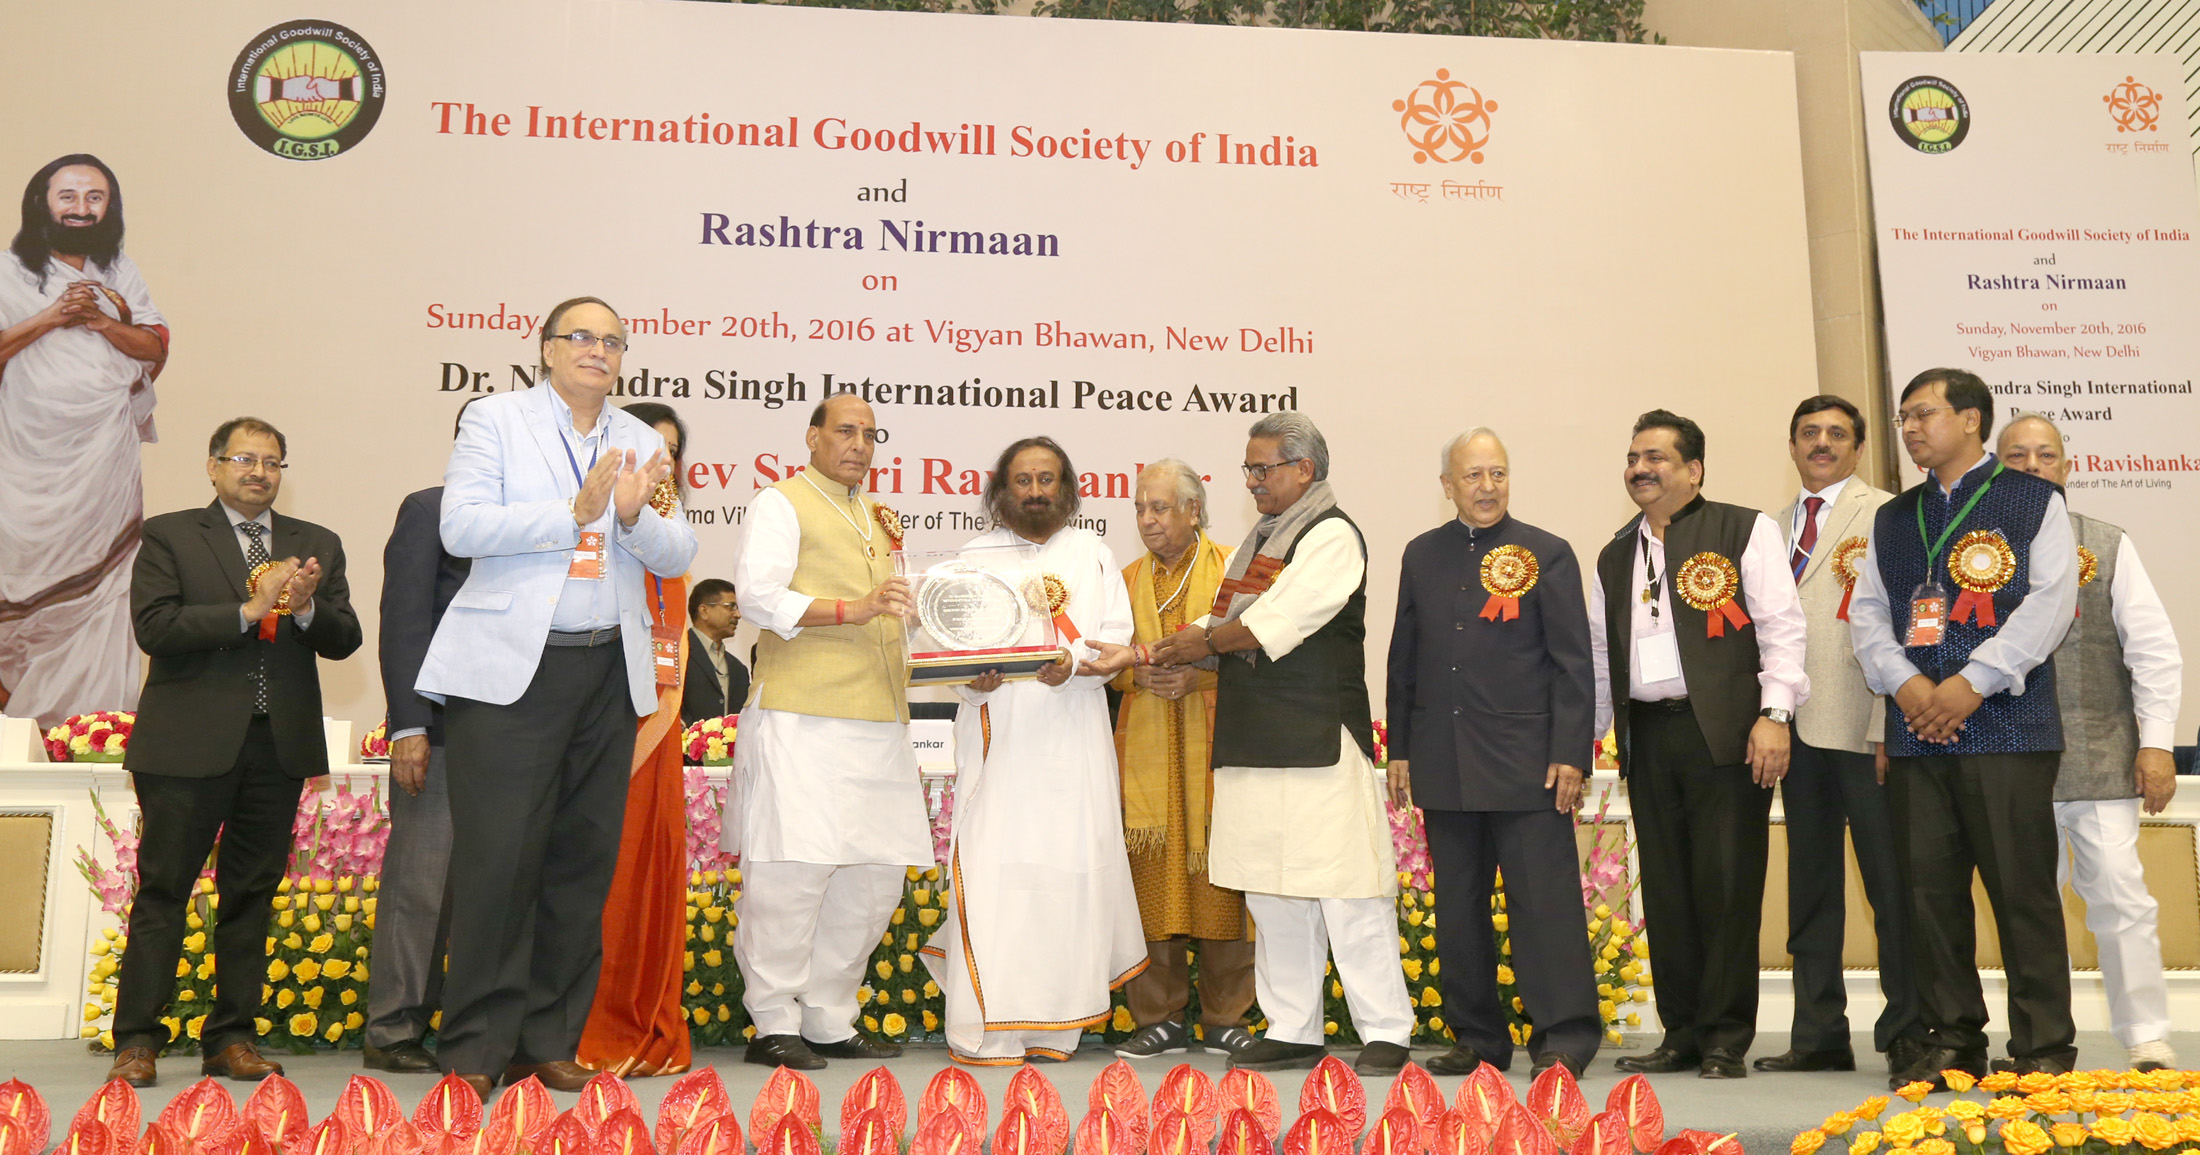 The Union Home Minister, Shri Rajnath Singh presenting the Dr. Nagendra Singh International Peace Award to Gurudev Sri Sri Ravi Shankar, in New Delhi on November 19, 2016.